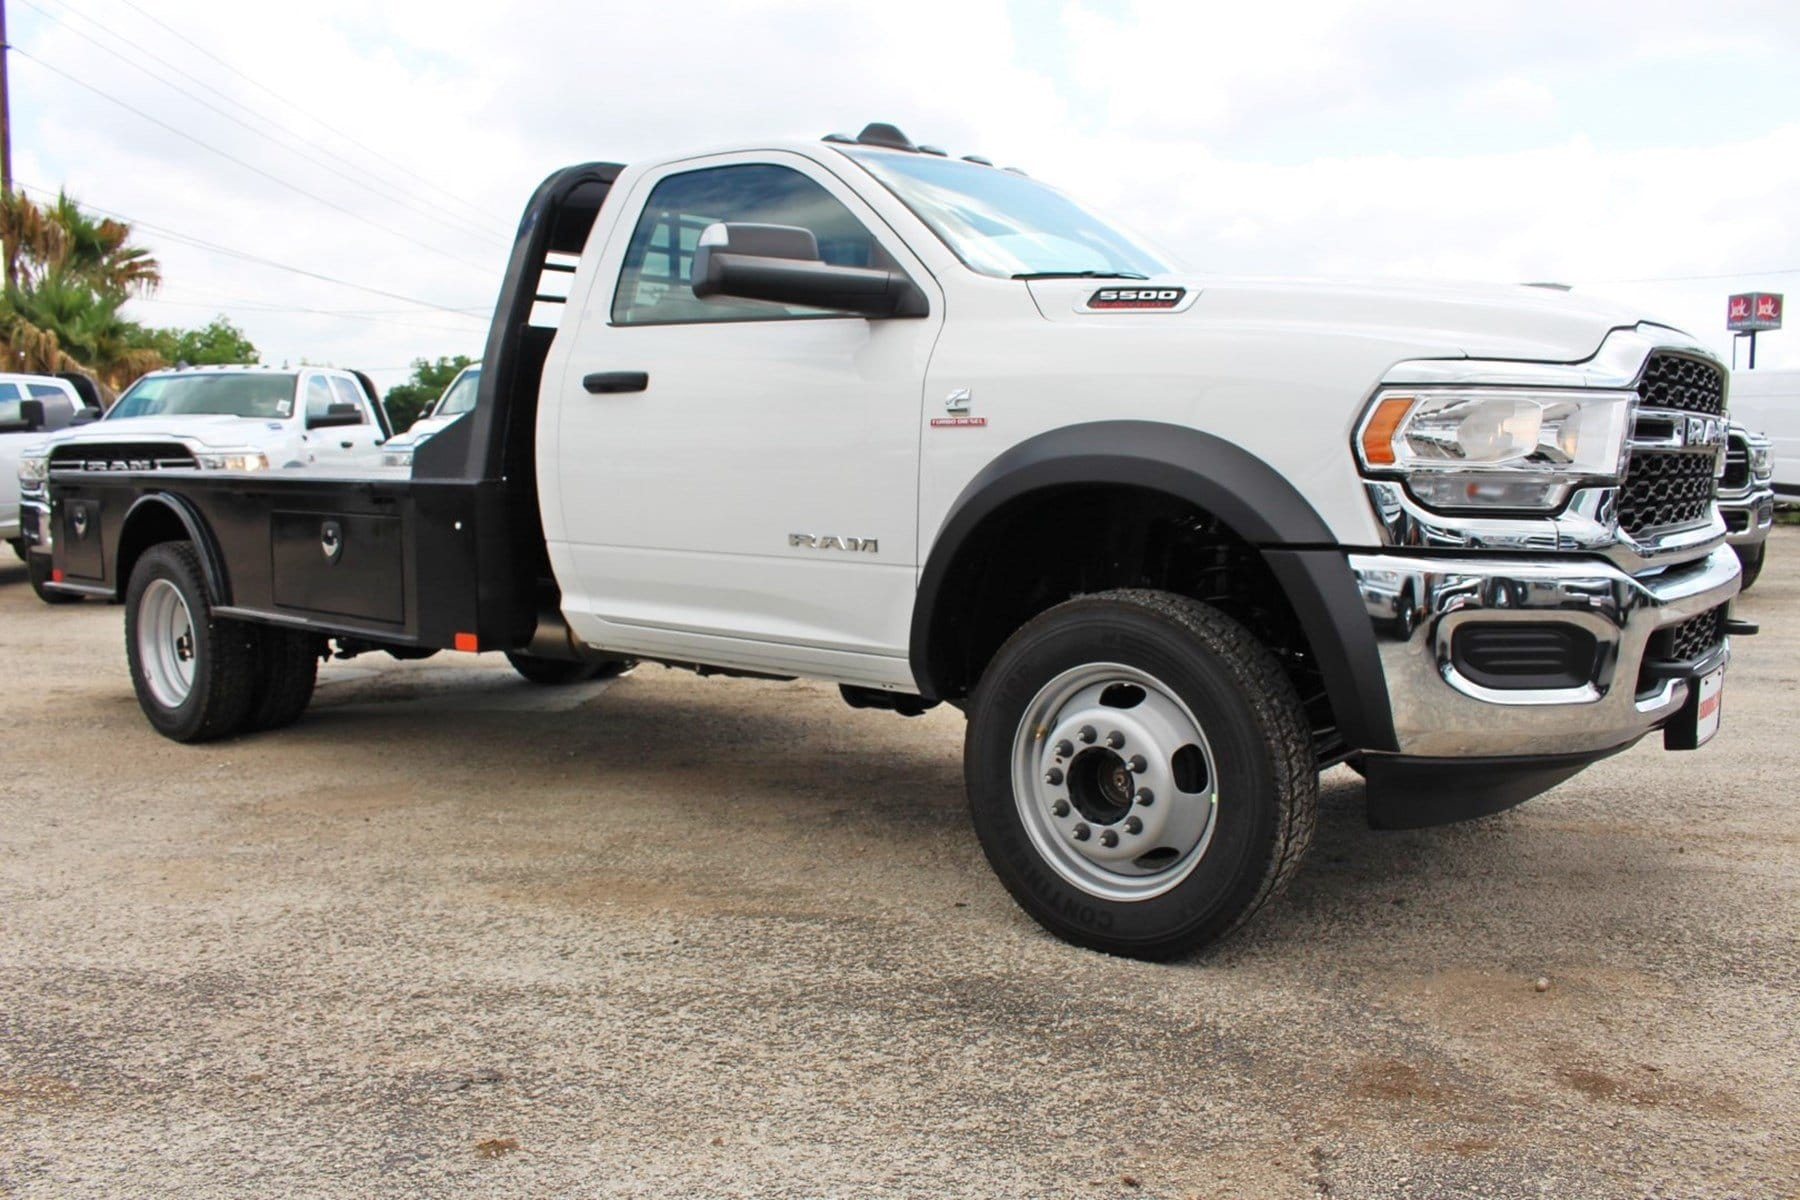 Dodge Ram Truck Bed For Sale >> New 2019 Ram 5500 Flatbed For Sale In New Braunfels Tx Tg535482